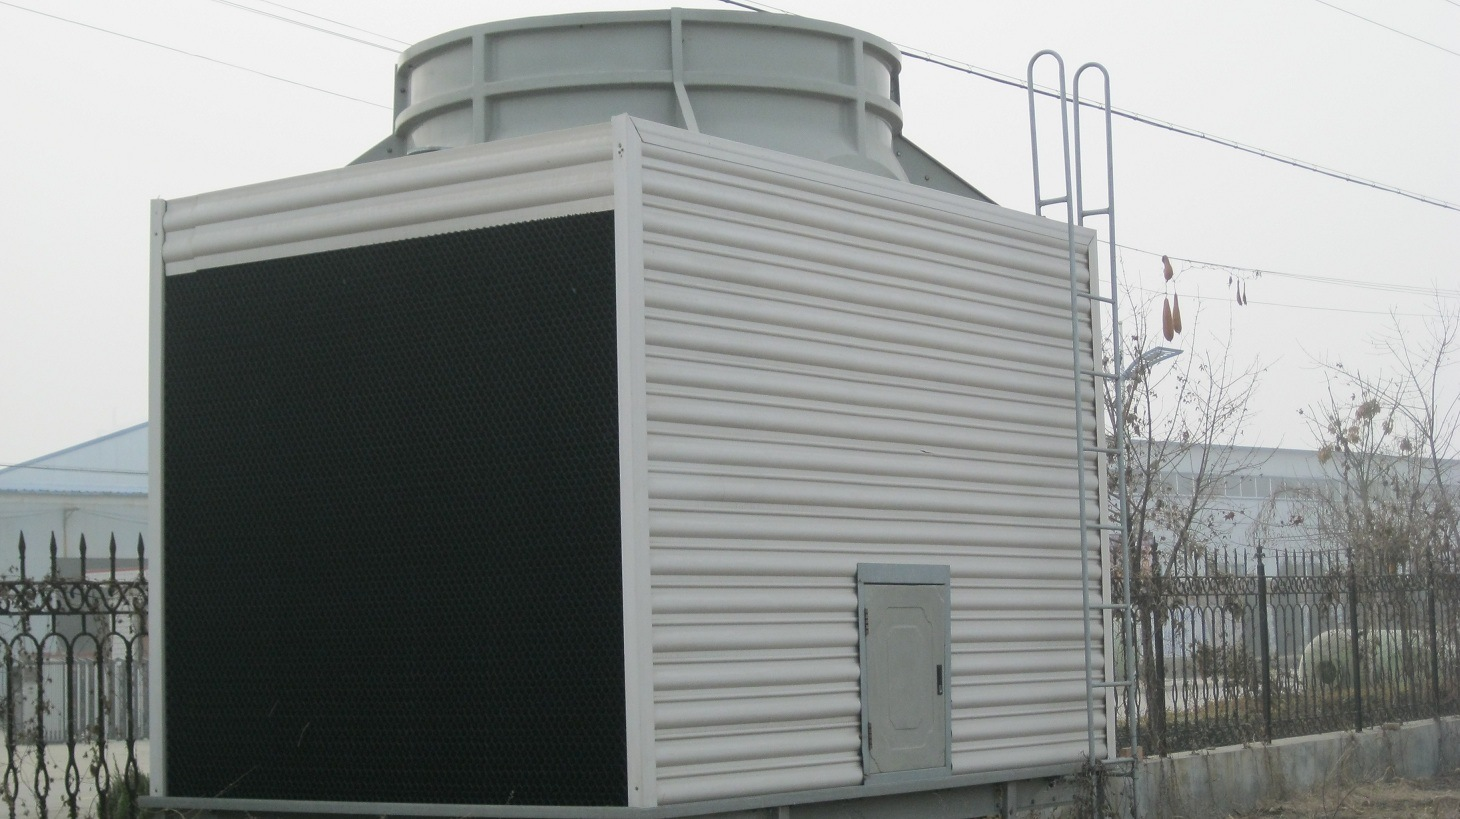 How Does Crossflow Cooling Towers Work?